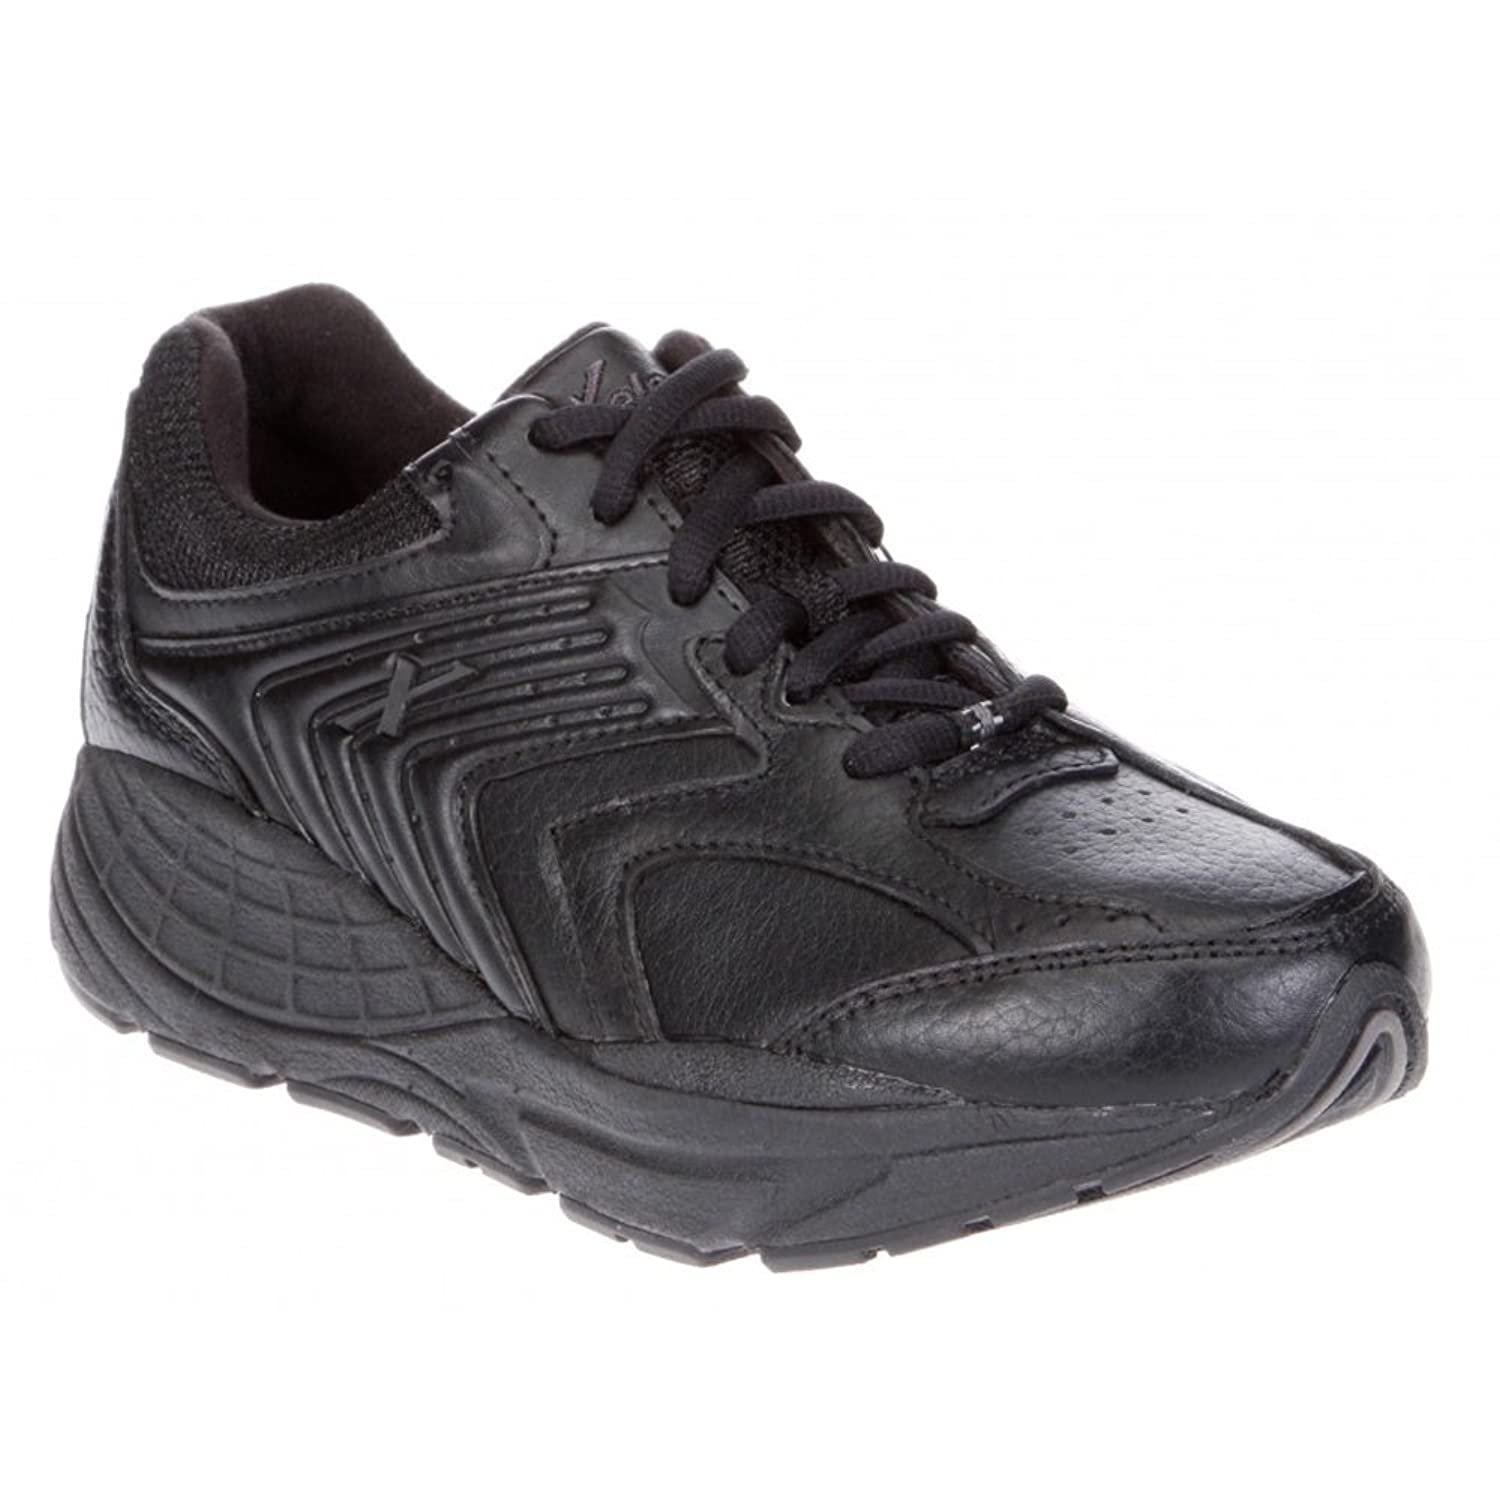 Xelero Matrix Women's Comfort Therapeutic Extra Depth Sneaker Shoe leather  lace-up